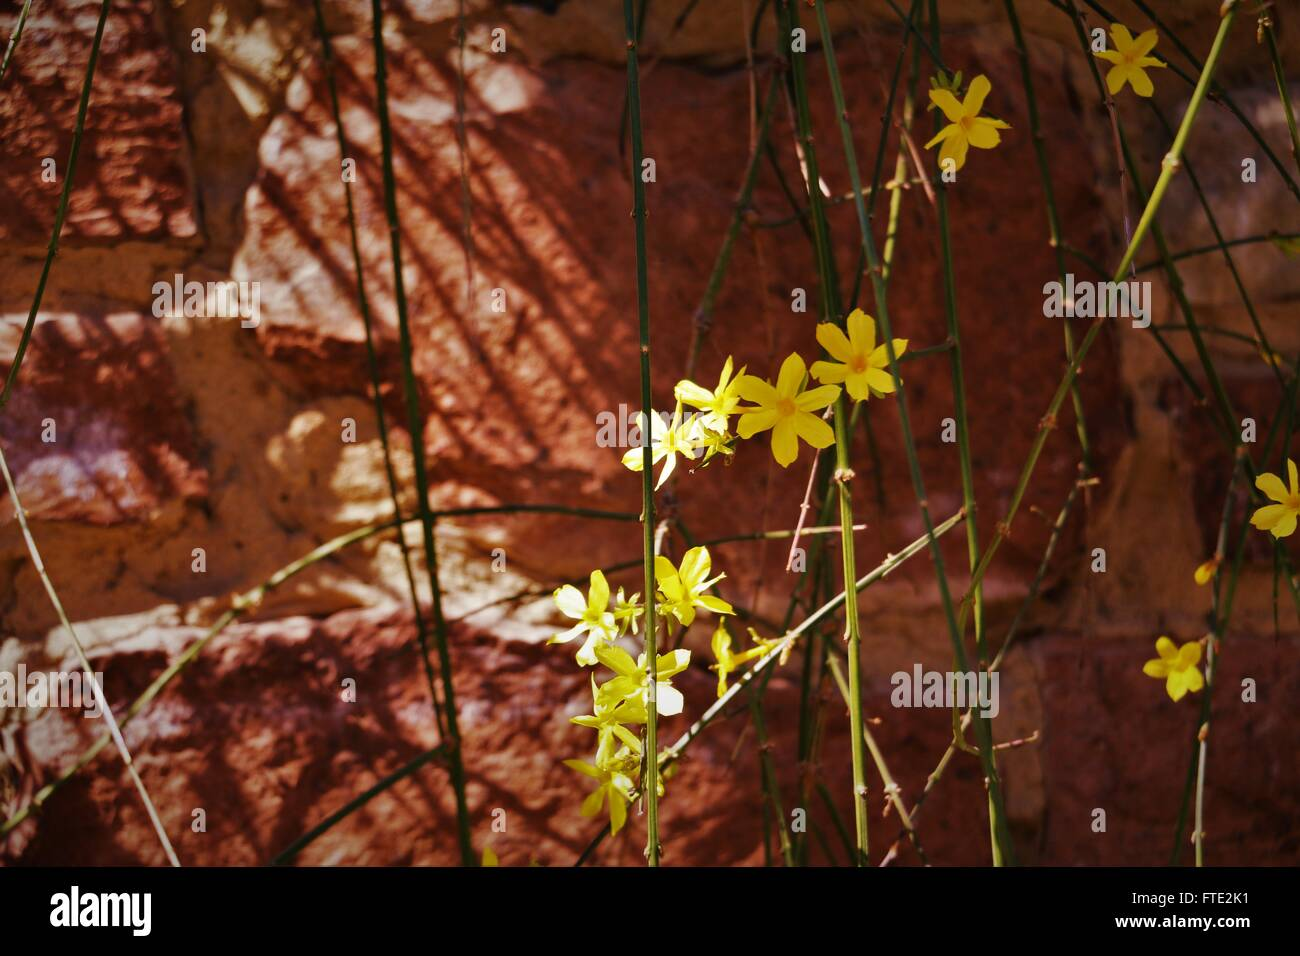 Yellow flowers against orange brick wall. - Stock Image